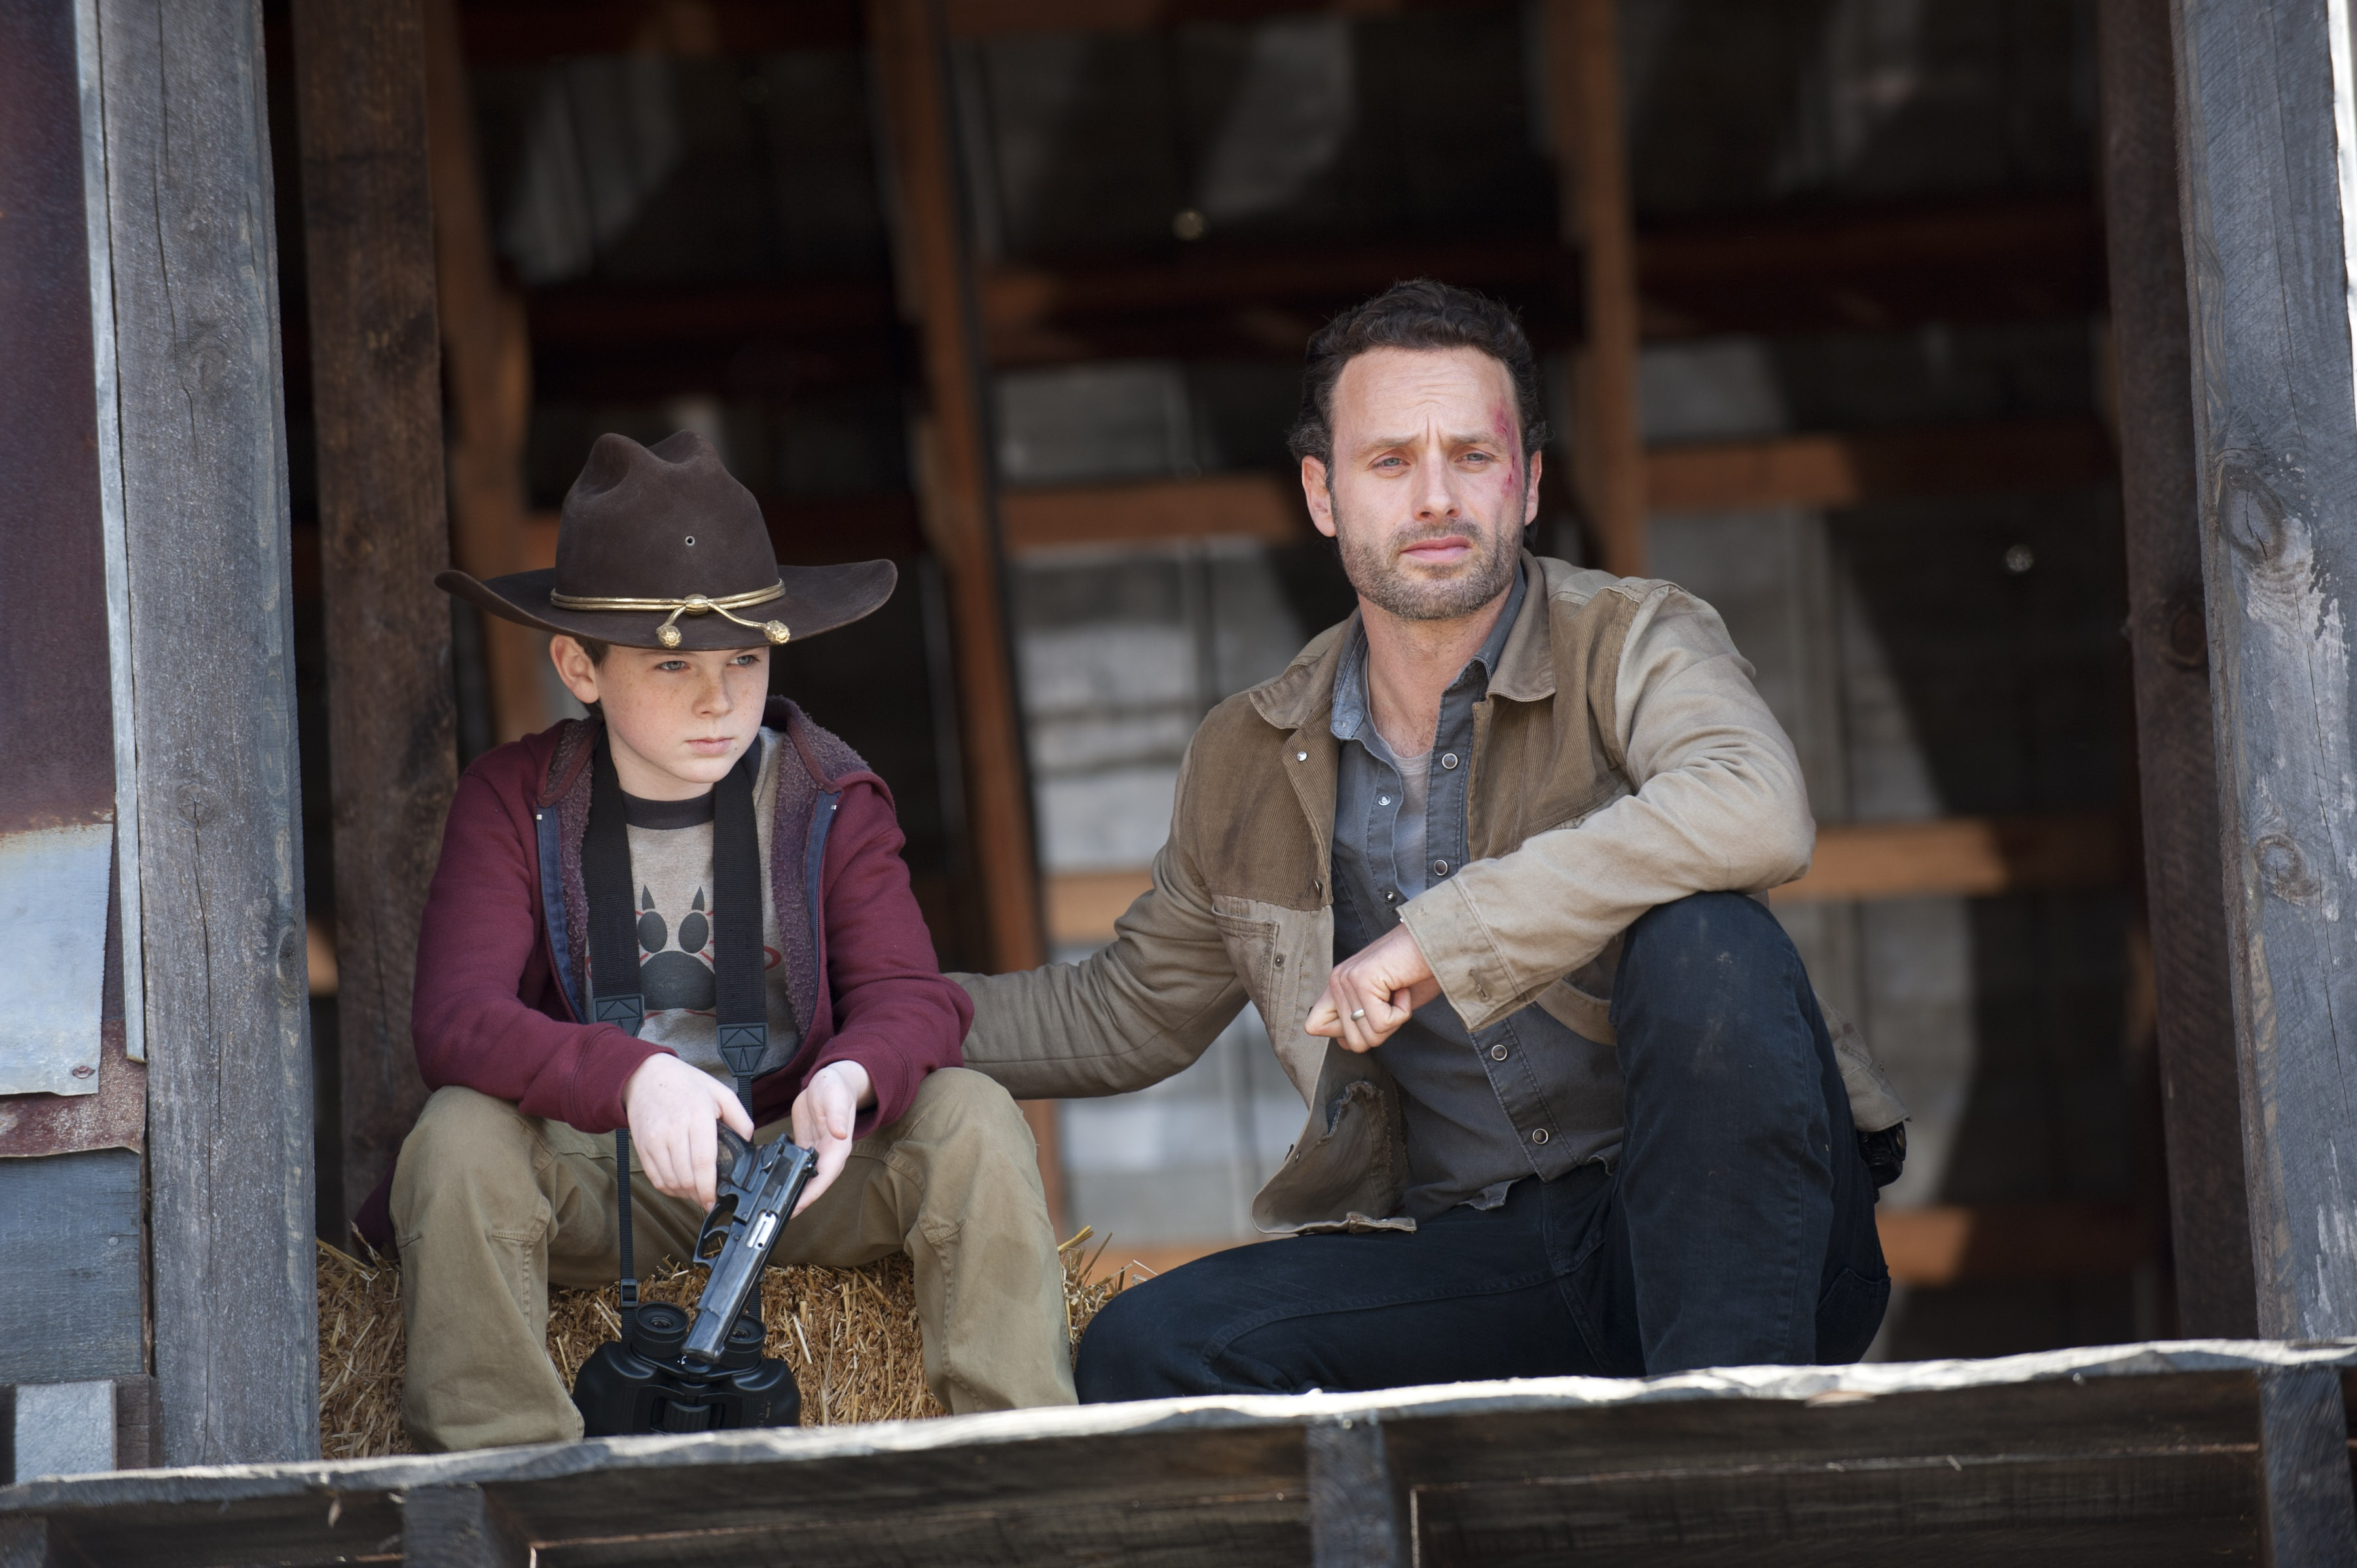 Carl And Rick The Walking Dead Photo 35608805 Fanpop